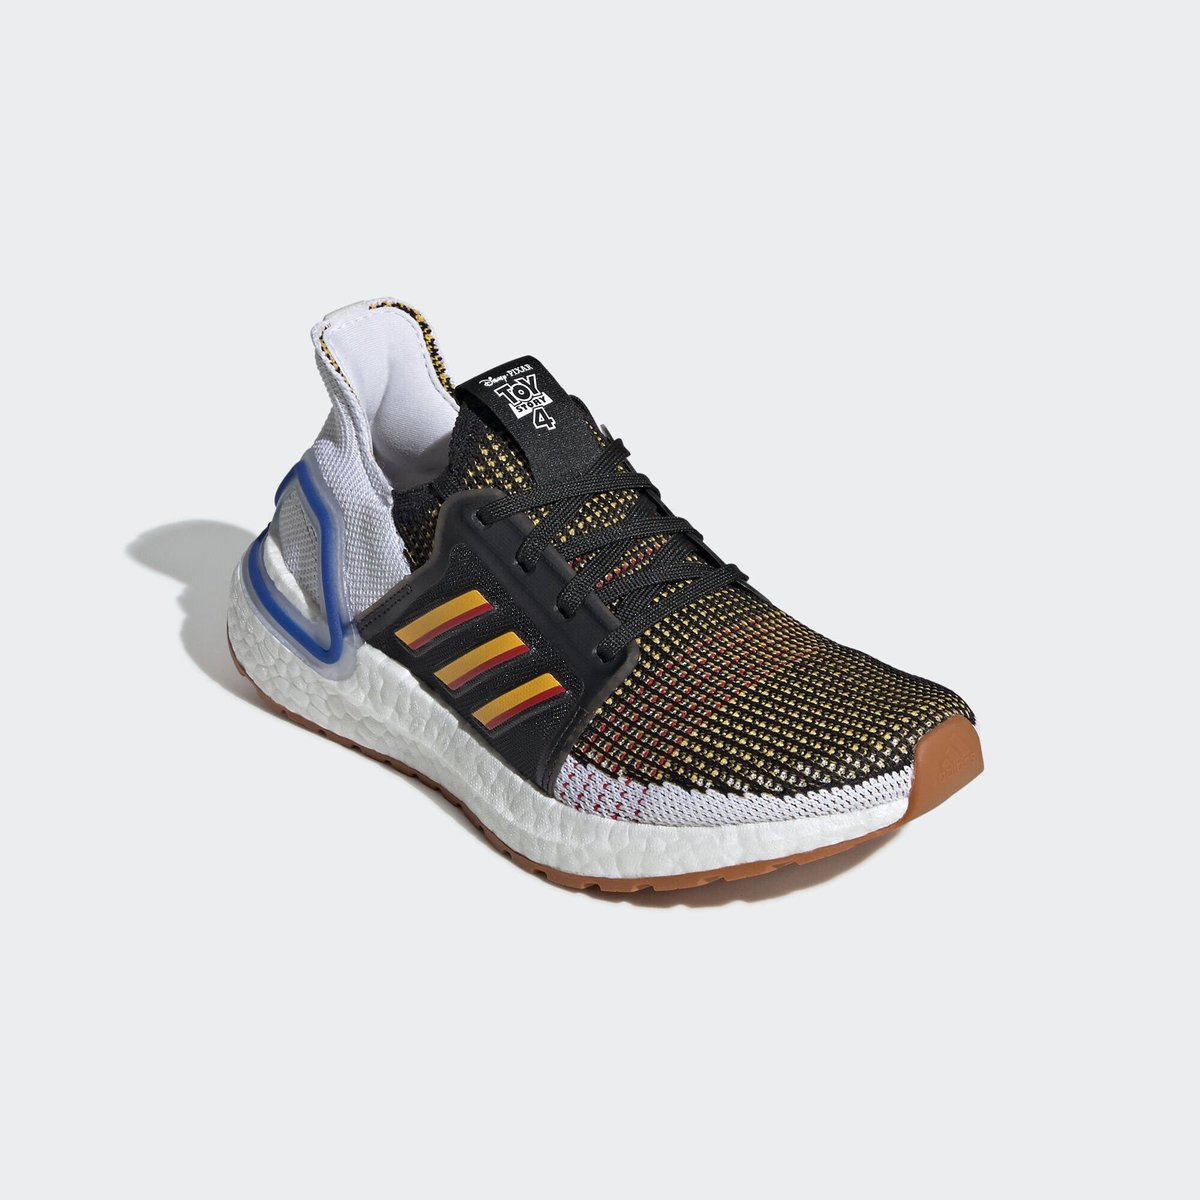 """An early look at the Adidas Ultra Boost 19 """"Toy Story 4"""" rumored to drop June 21 in kids sizing."""